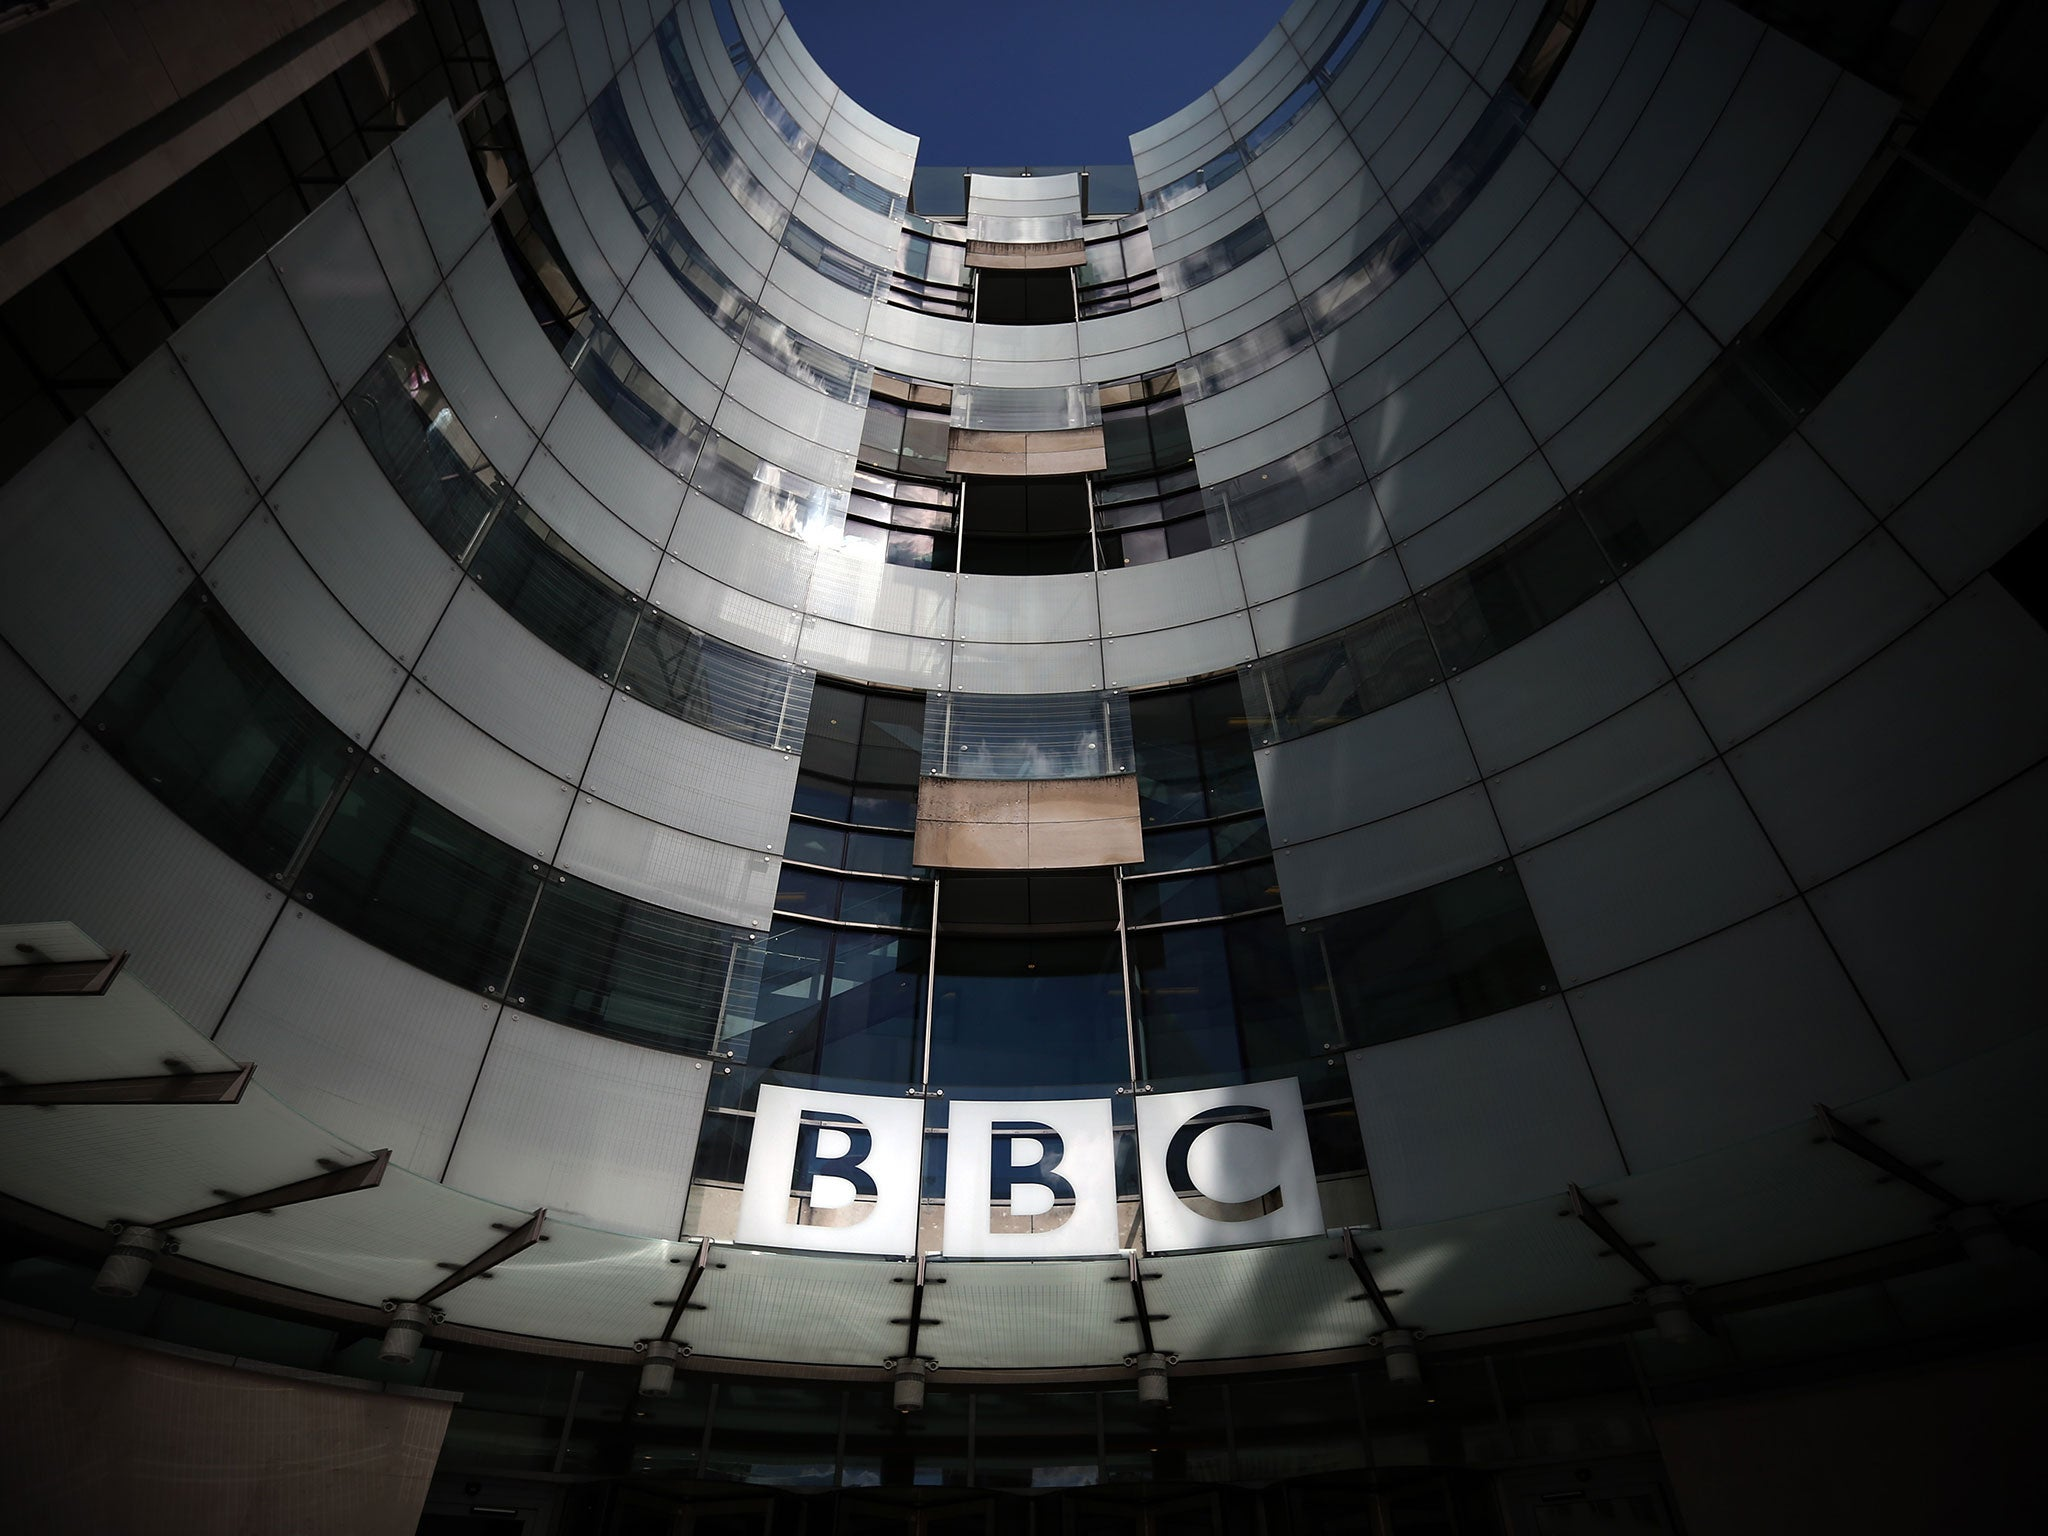 Tomorrow's Bbc: 'the Future Of The Bbc Needs To Be Driven By Evidence And